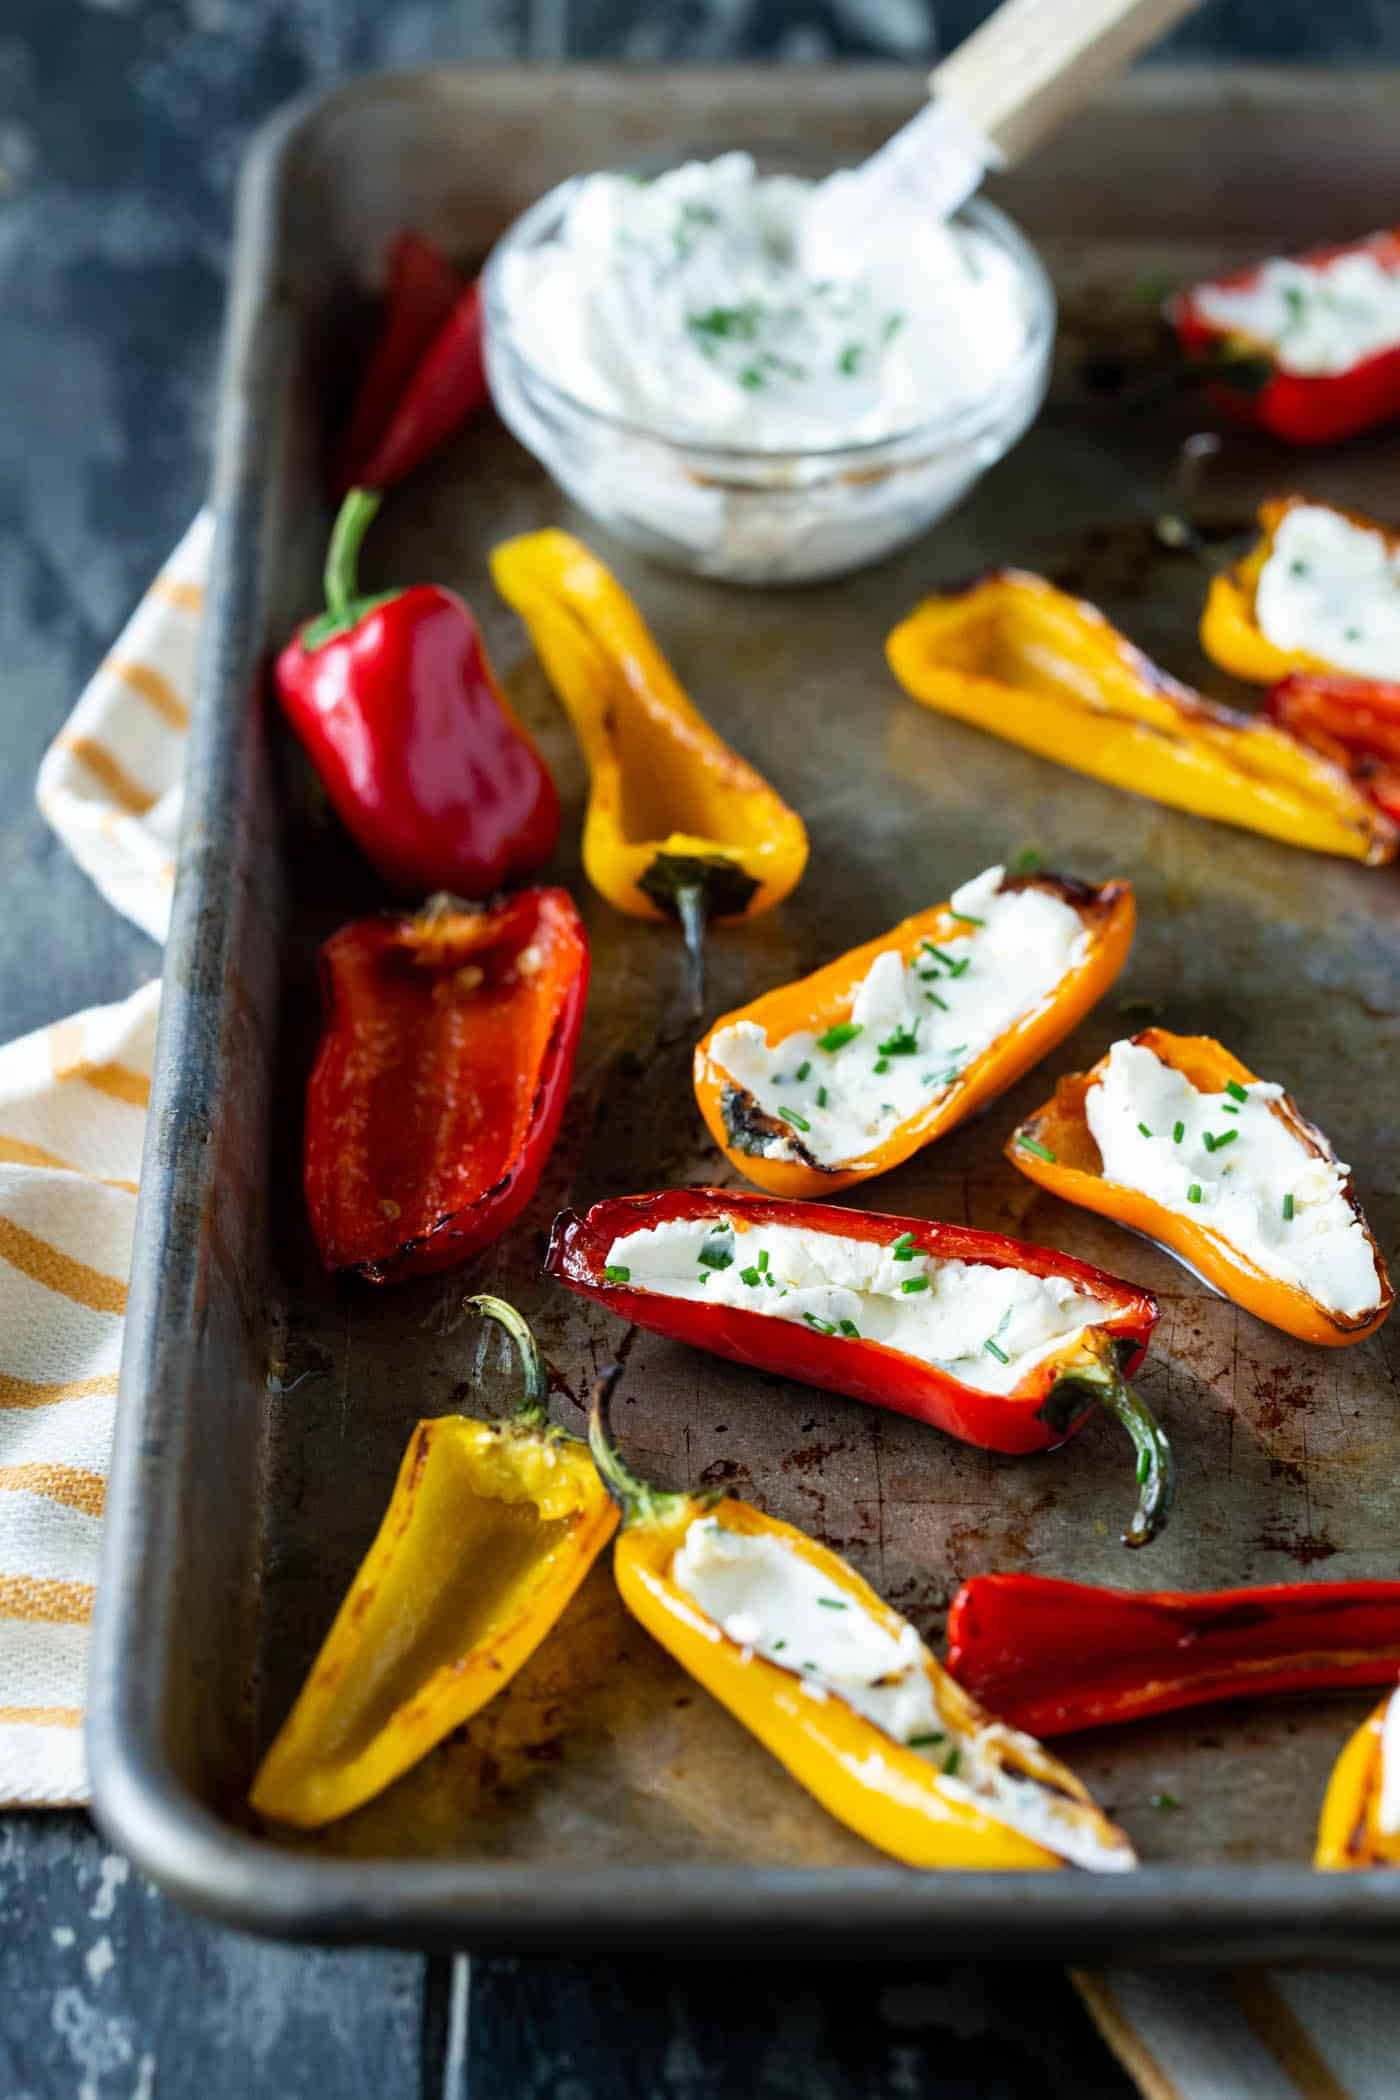 grilled peppers with goat cheese on sheet pan with fresh herbs for garnish and bowl of goat cheese spread on side.